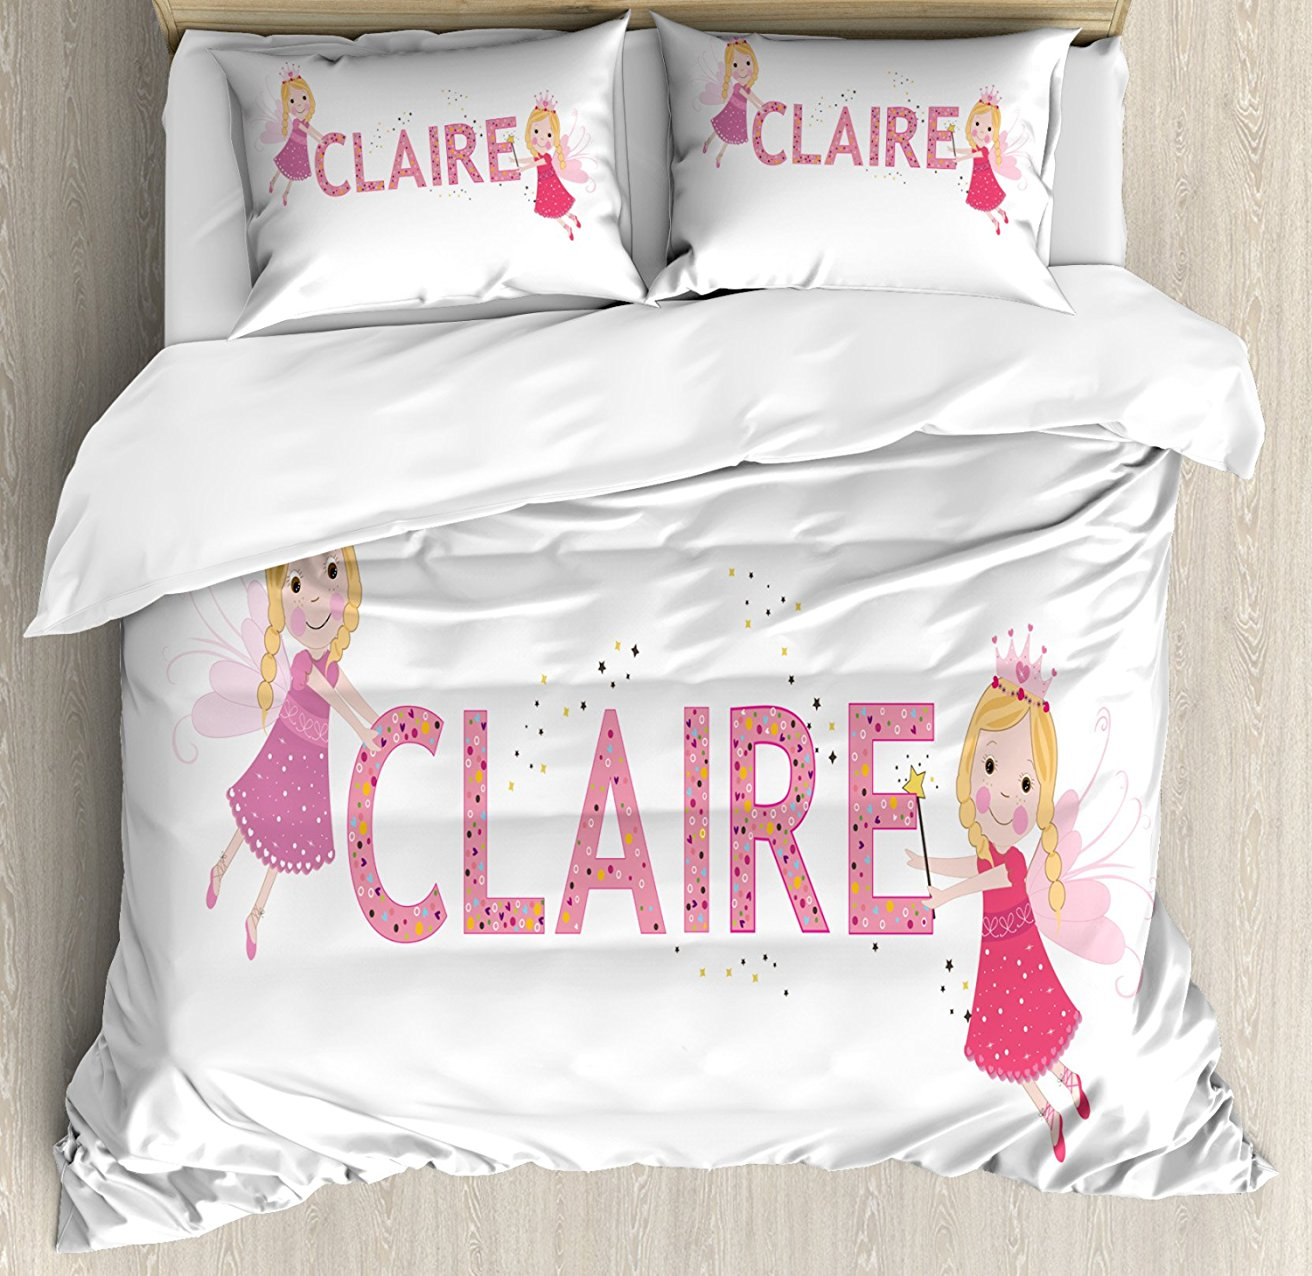 Claire Duvet Cover Set, Pastel Toned Colorful Arrangement of Fairy Tale Elements with Magic Wands and Wings 4 Piece Bedding Set